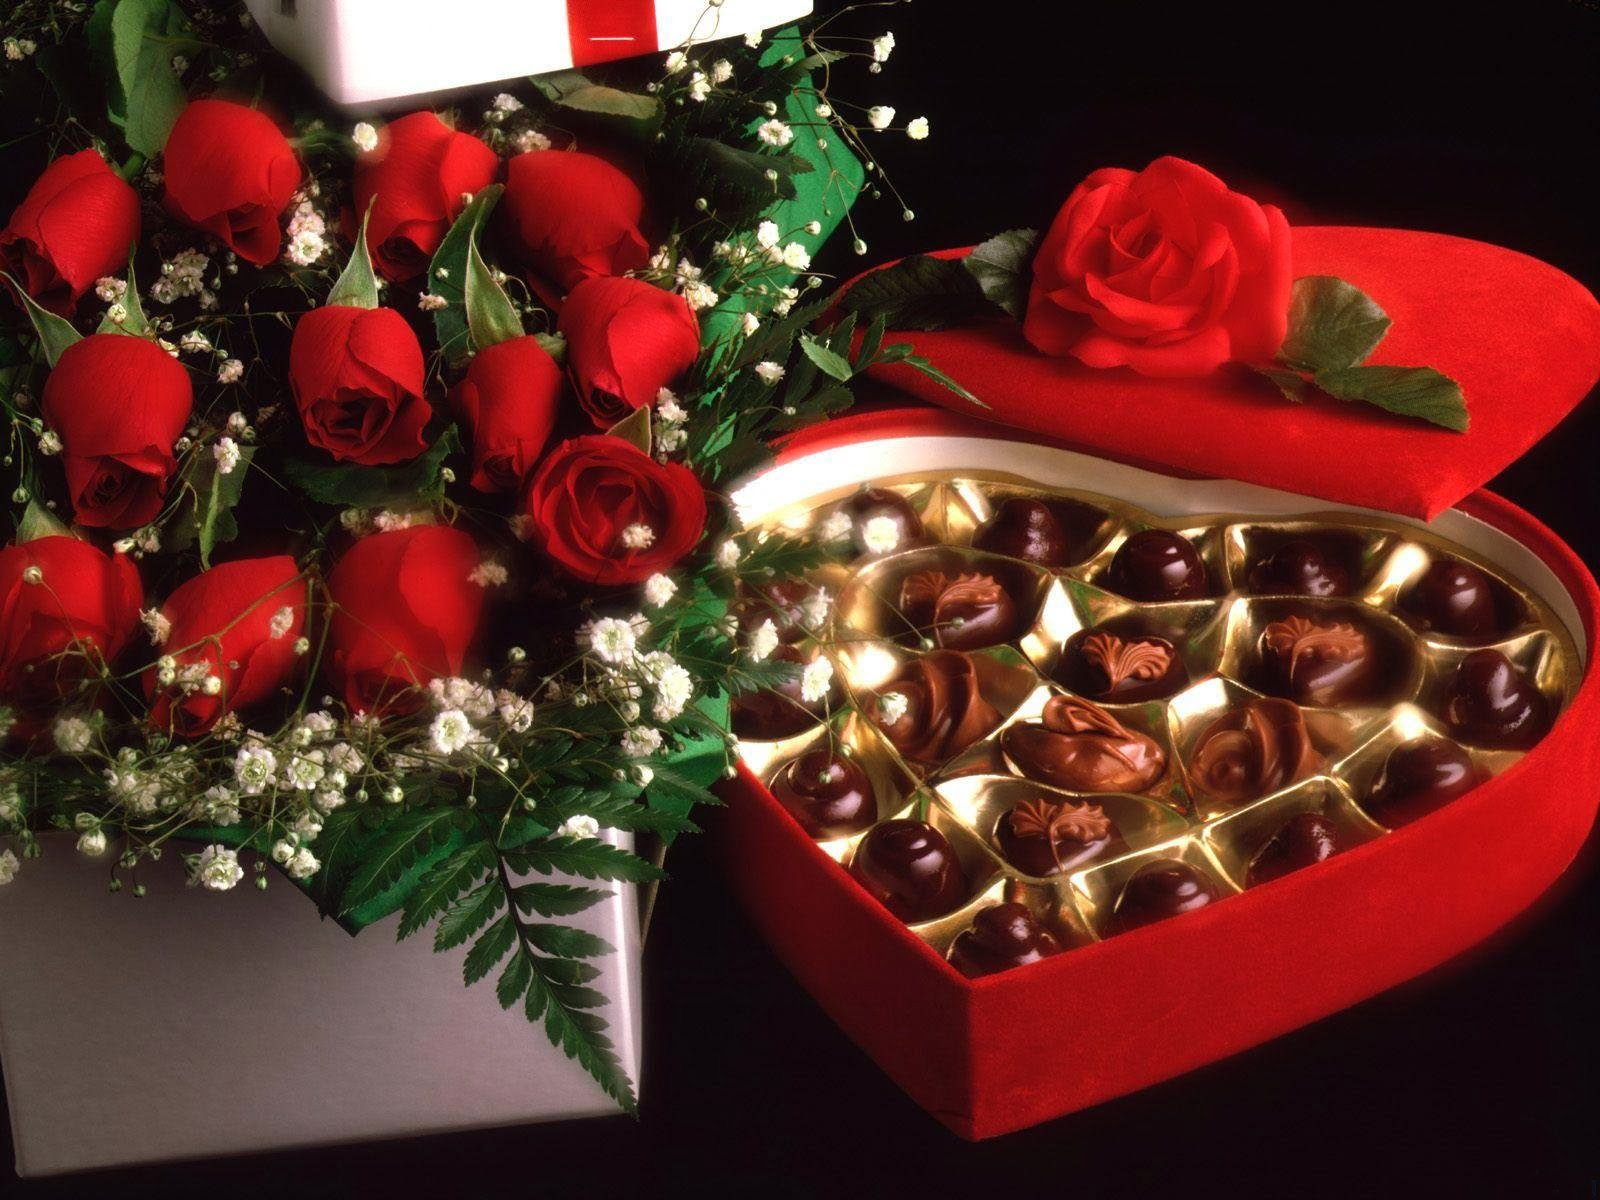 Chocolates and flowers computer wallpaper   beautiful desktop 1600x1200